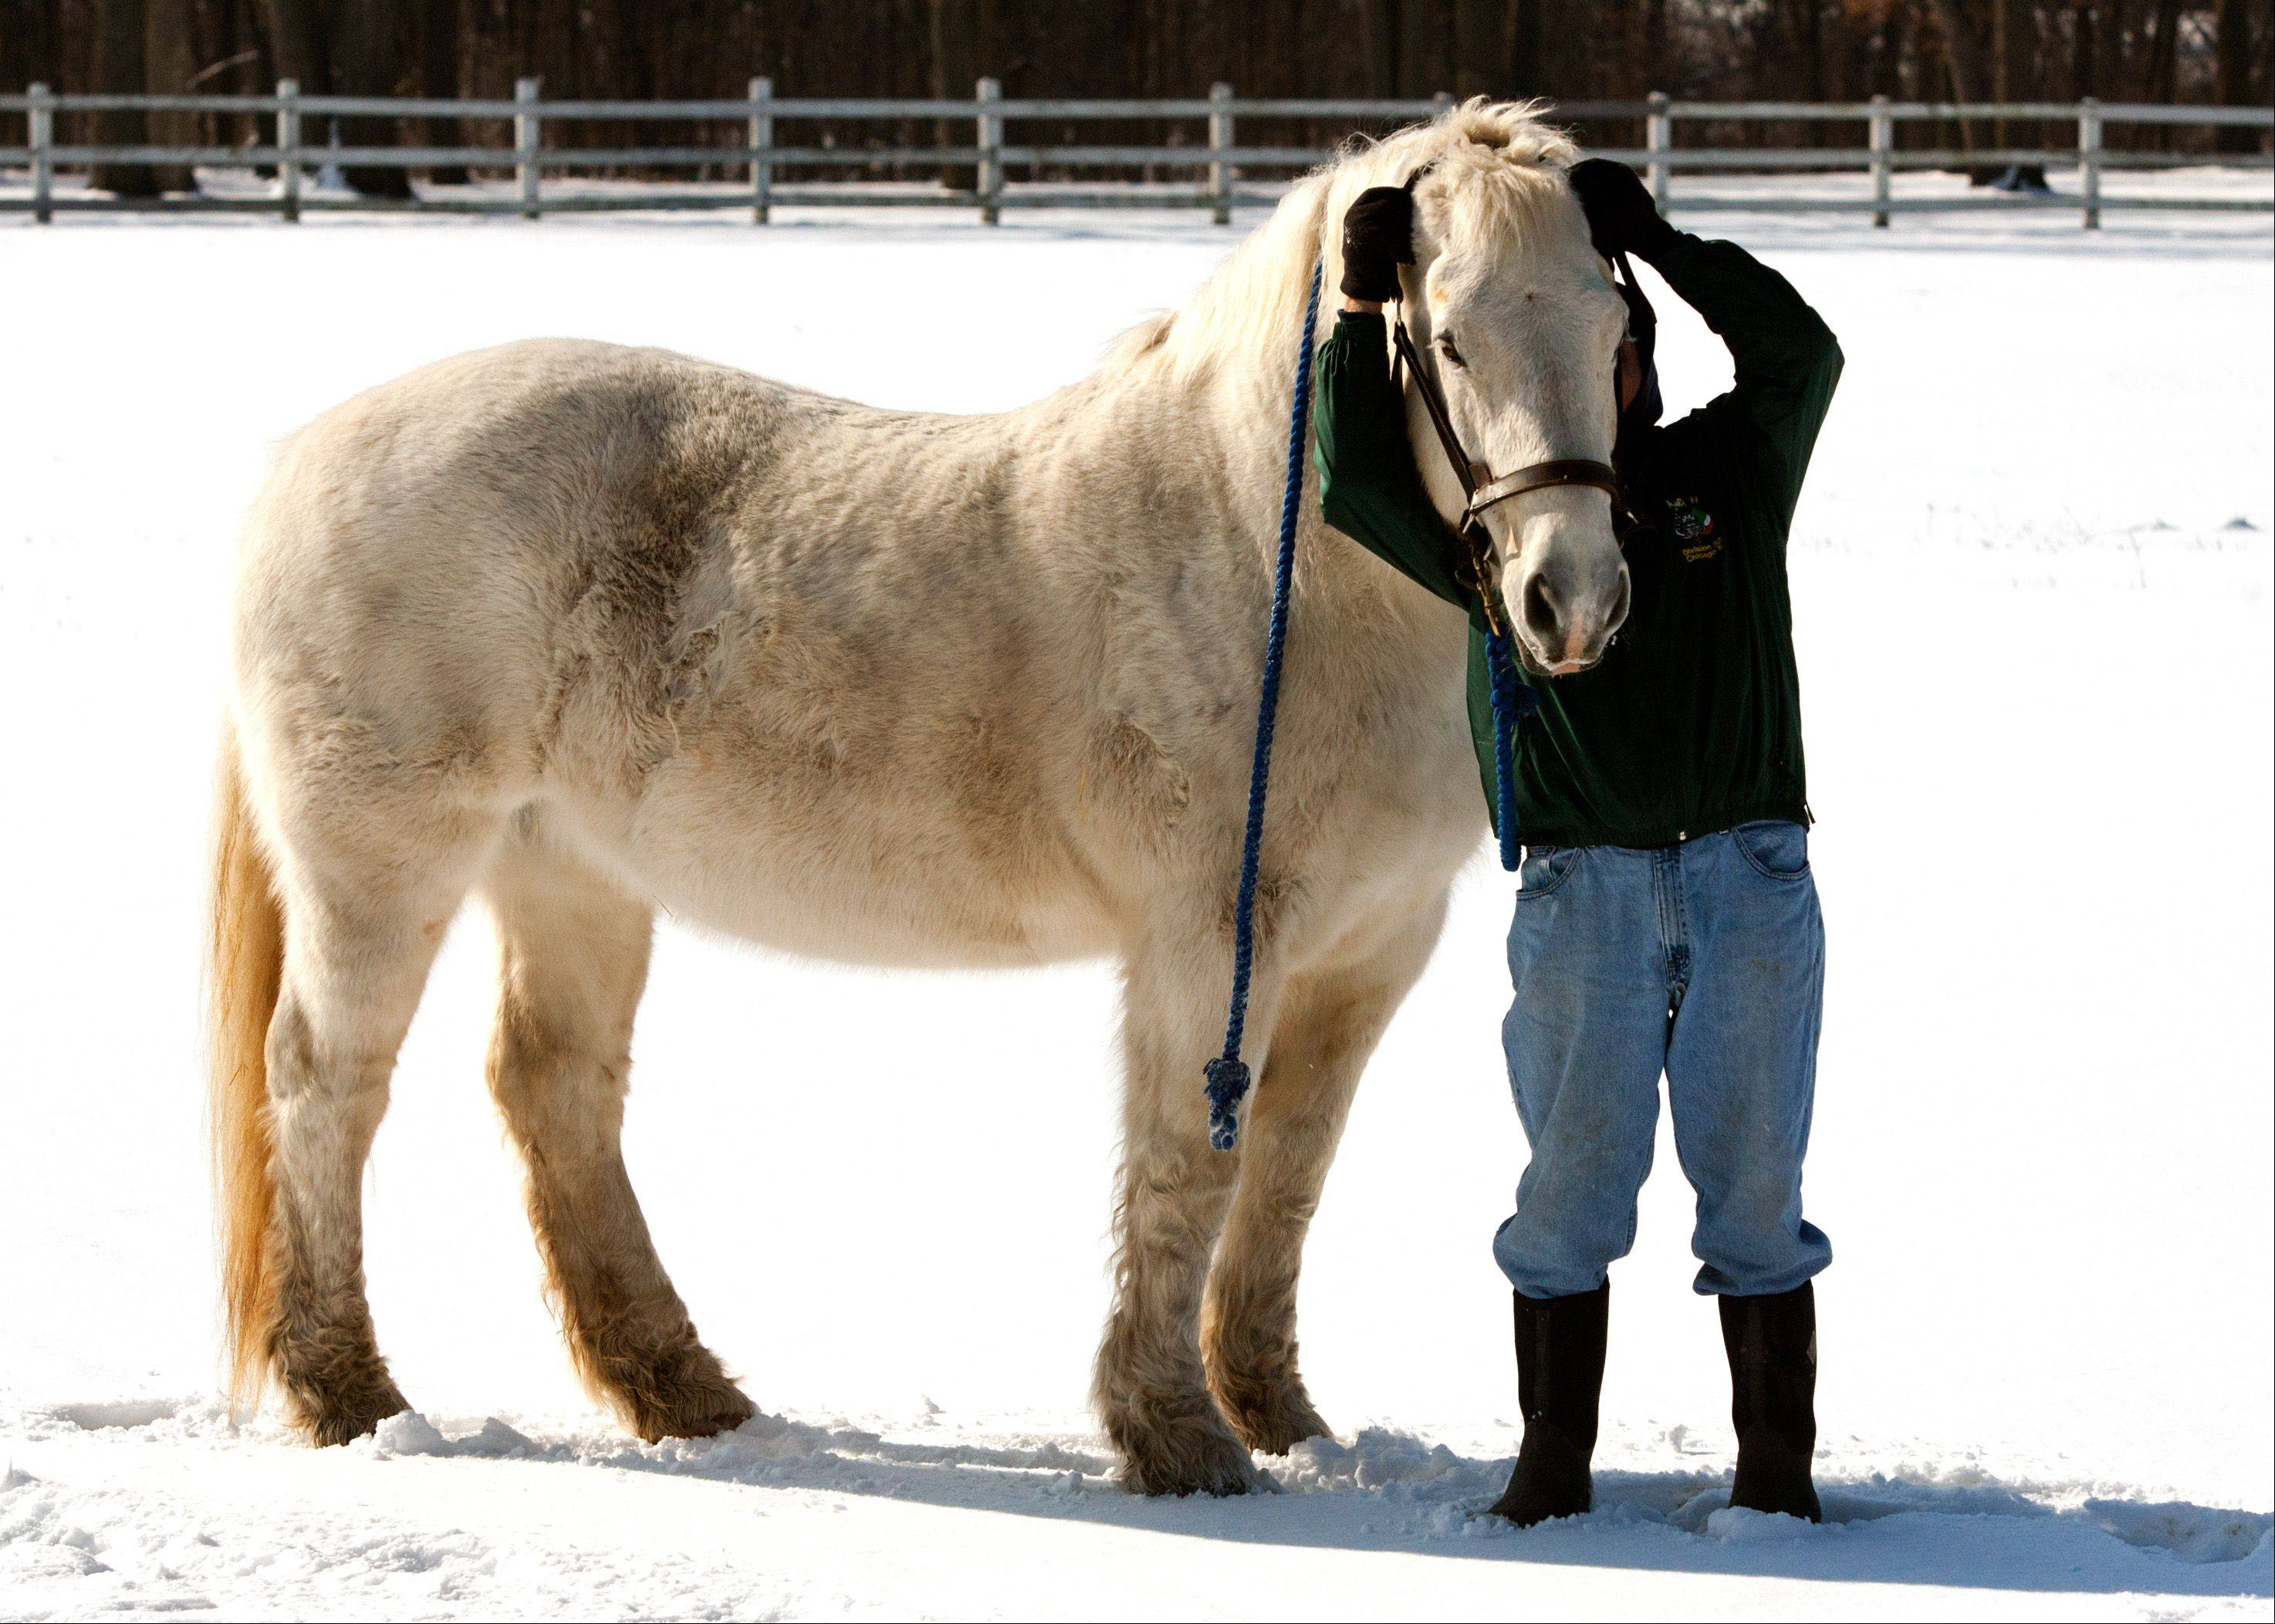 A volunteer prepares to move a horse to another pasture at the Danada Forest Preserve in Wheaton. DuPage Forest Preserve Commissioners are conducting their own investigation into claims that horses are poorly treated at Danada Equestrian Center in Wheaton.